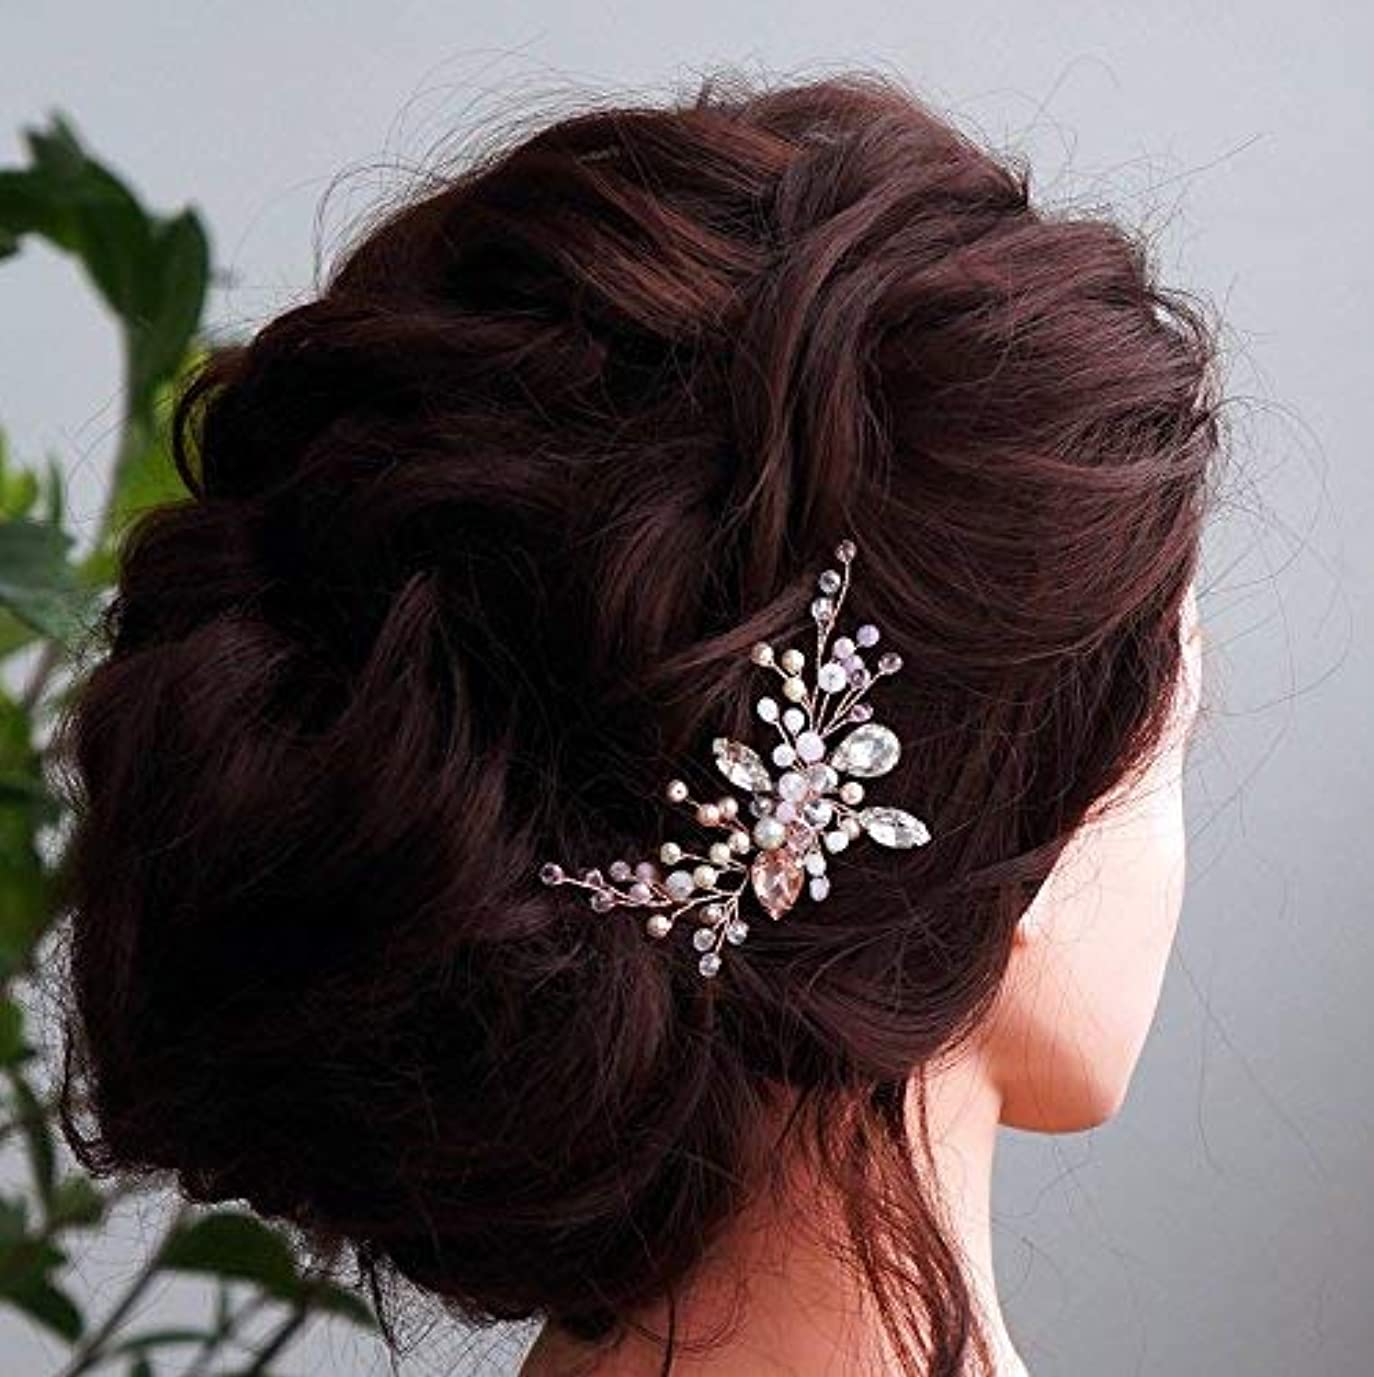 元に戻す色合い怒るKercisbeauty Wedding Bridal Bridesmaids Flower Girl Pink Crystal Beads and Rhinestone Tiny Cute Hair Comb Headband...